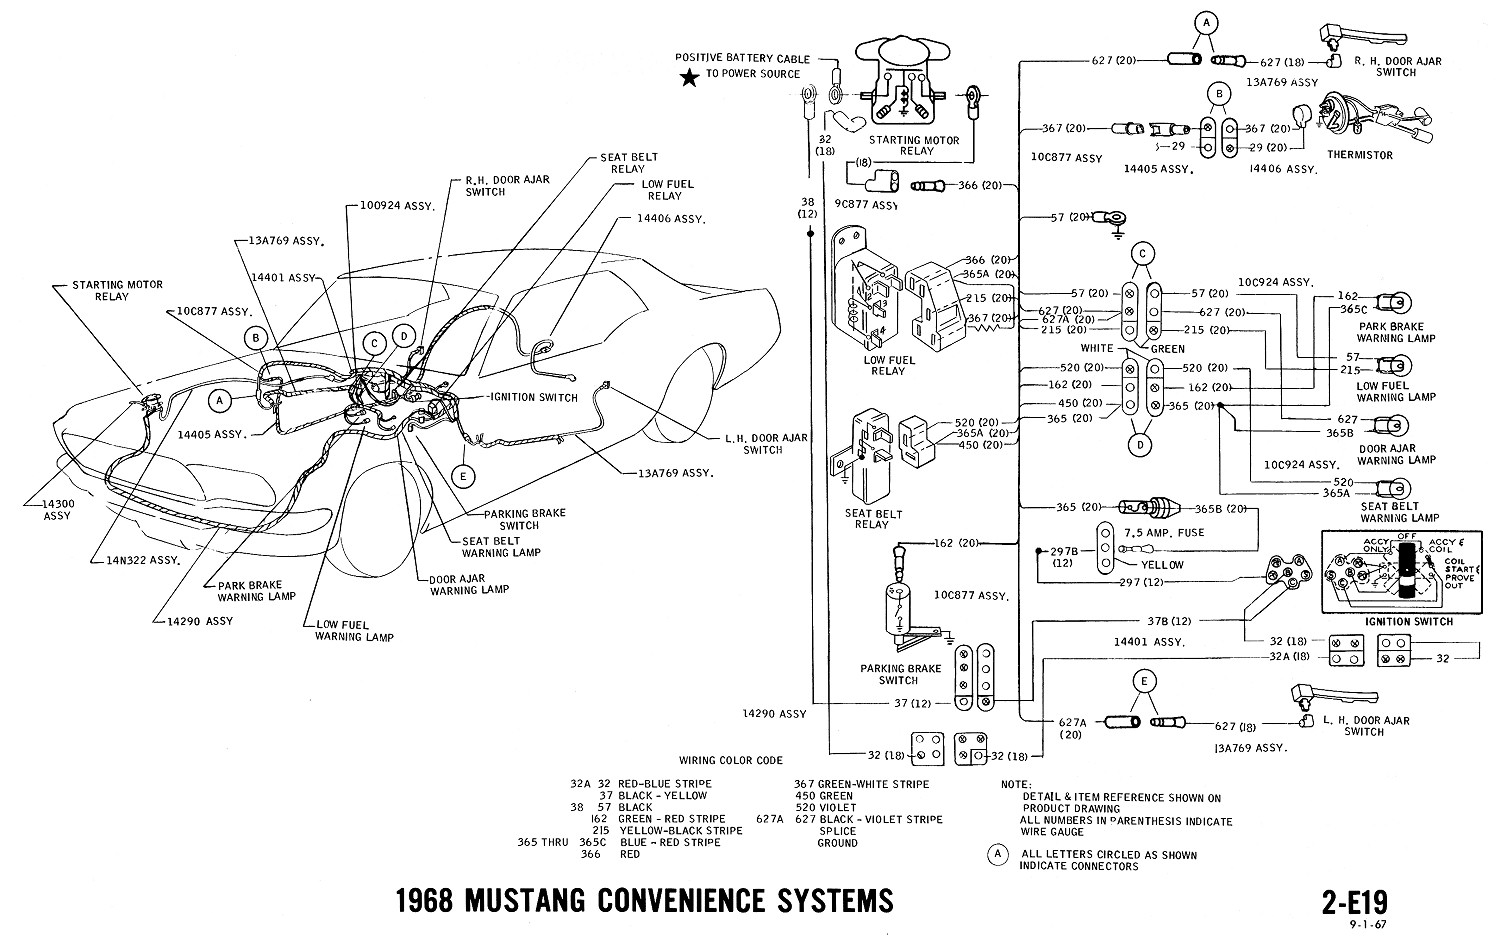 hight resolution of 1968 mustang transmission selector wiring diagram wiring diagram 1967 mustang wiring 68 mustang wiring harness